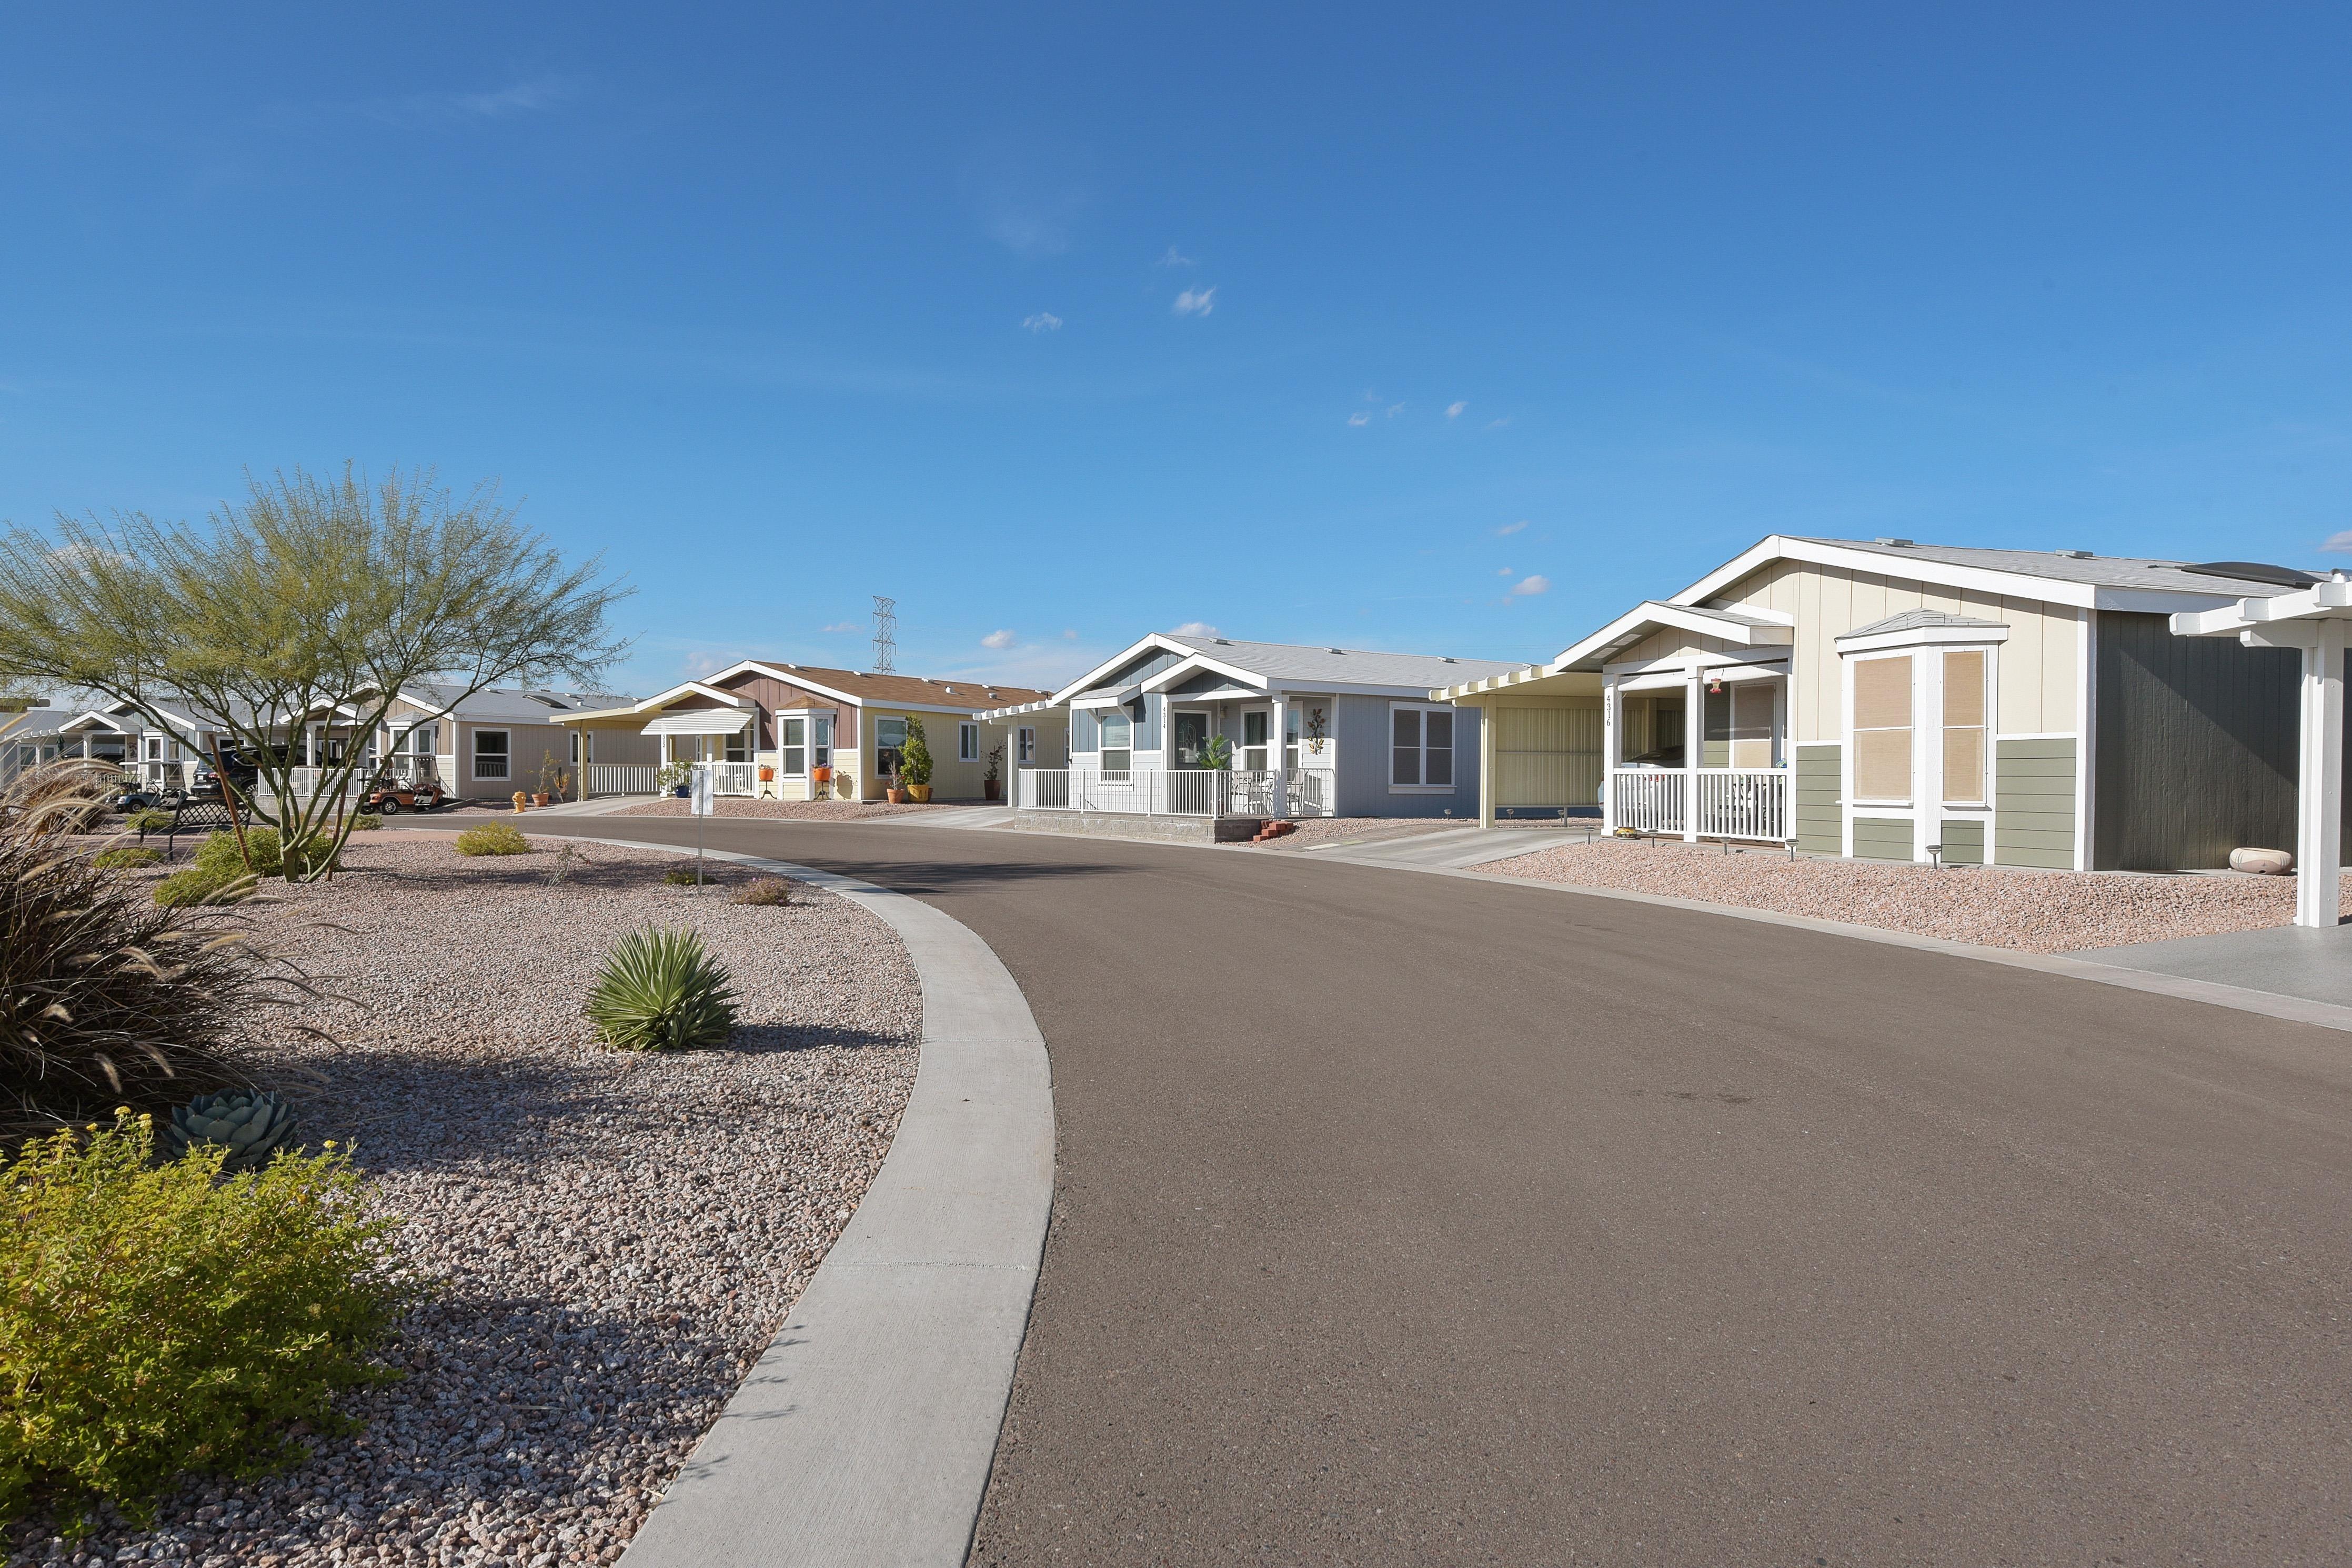 Mobile Home Arizona Rentals